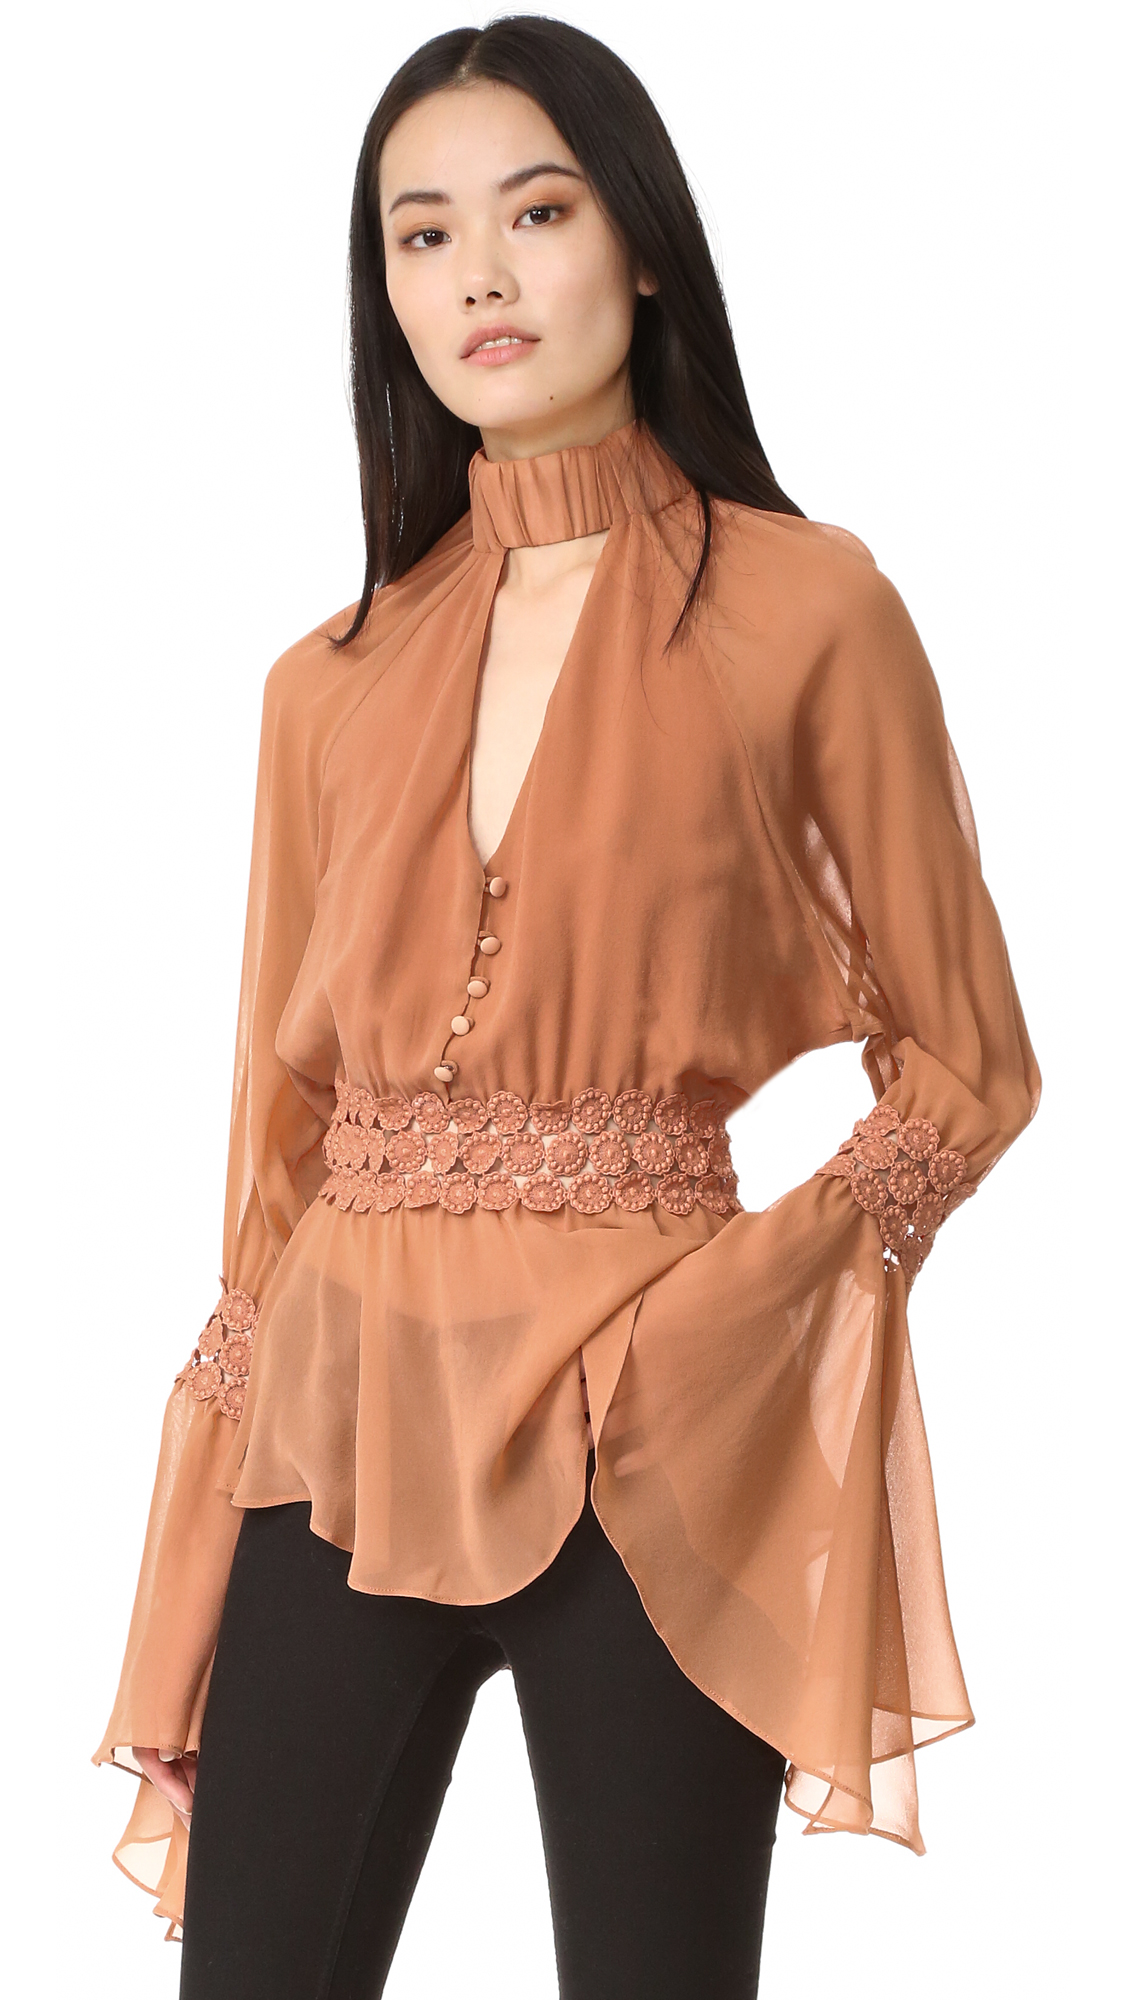 Nicholas Georgette Batwing Top - Clay